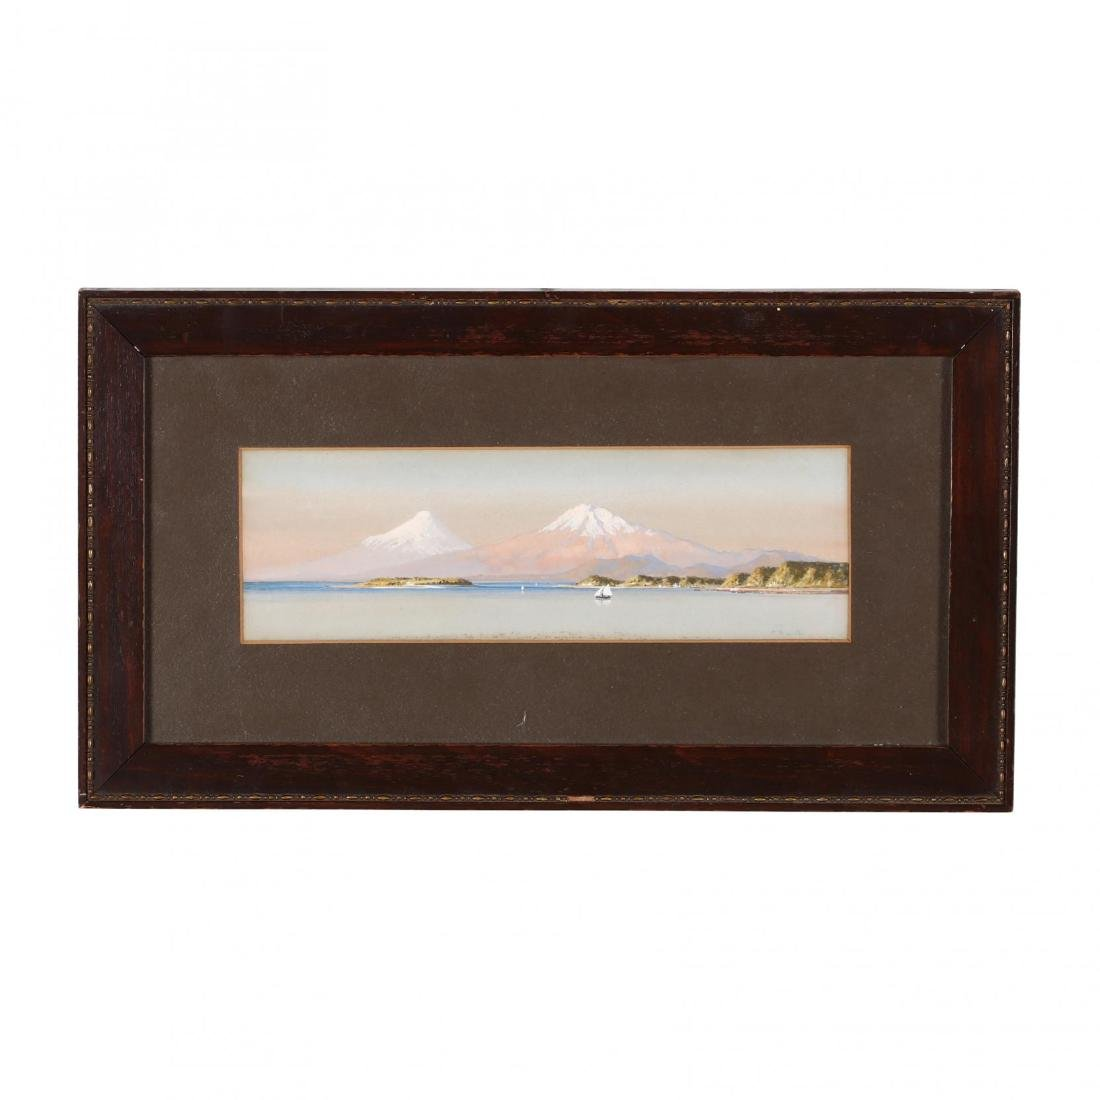 Diminutive Watercolor of Harbor and Mountains